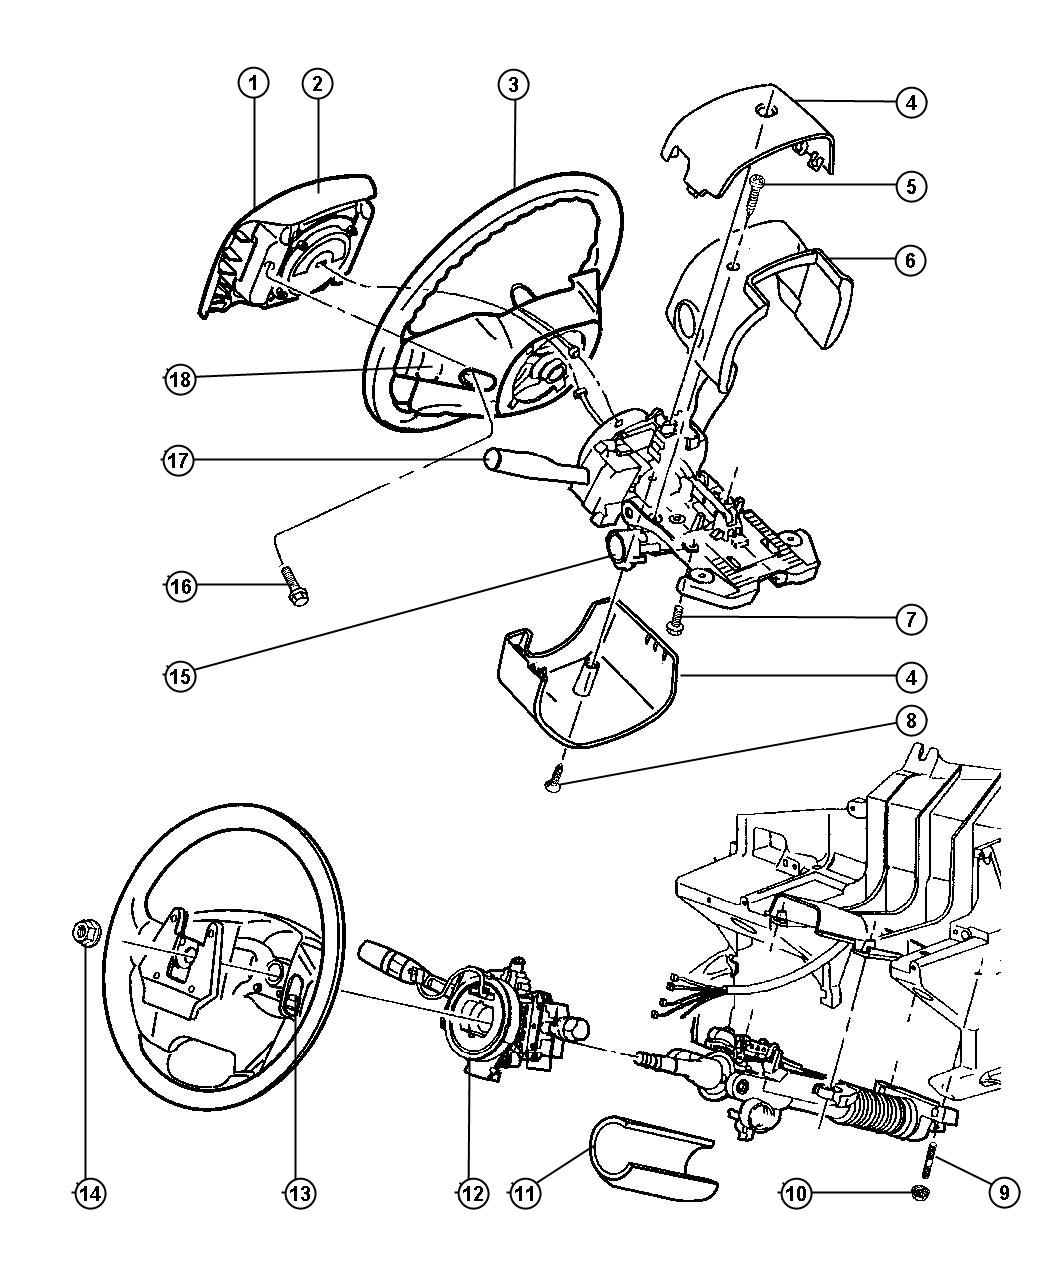 2008 Jeep Wrangler Clock Spring Wiring Schematic Real Diagram 01 Clockspring Air Bag Grand Cherokee 99 1998 Cj7